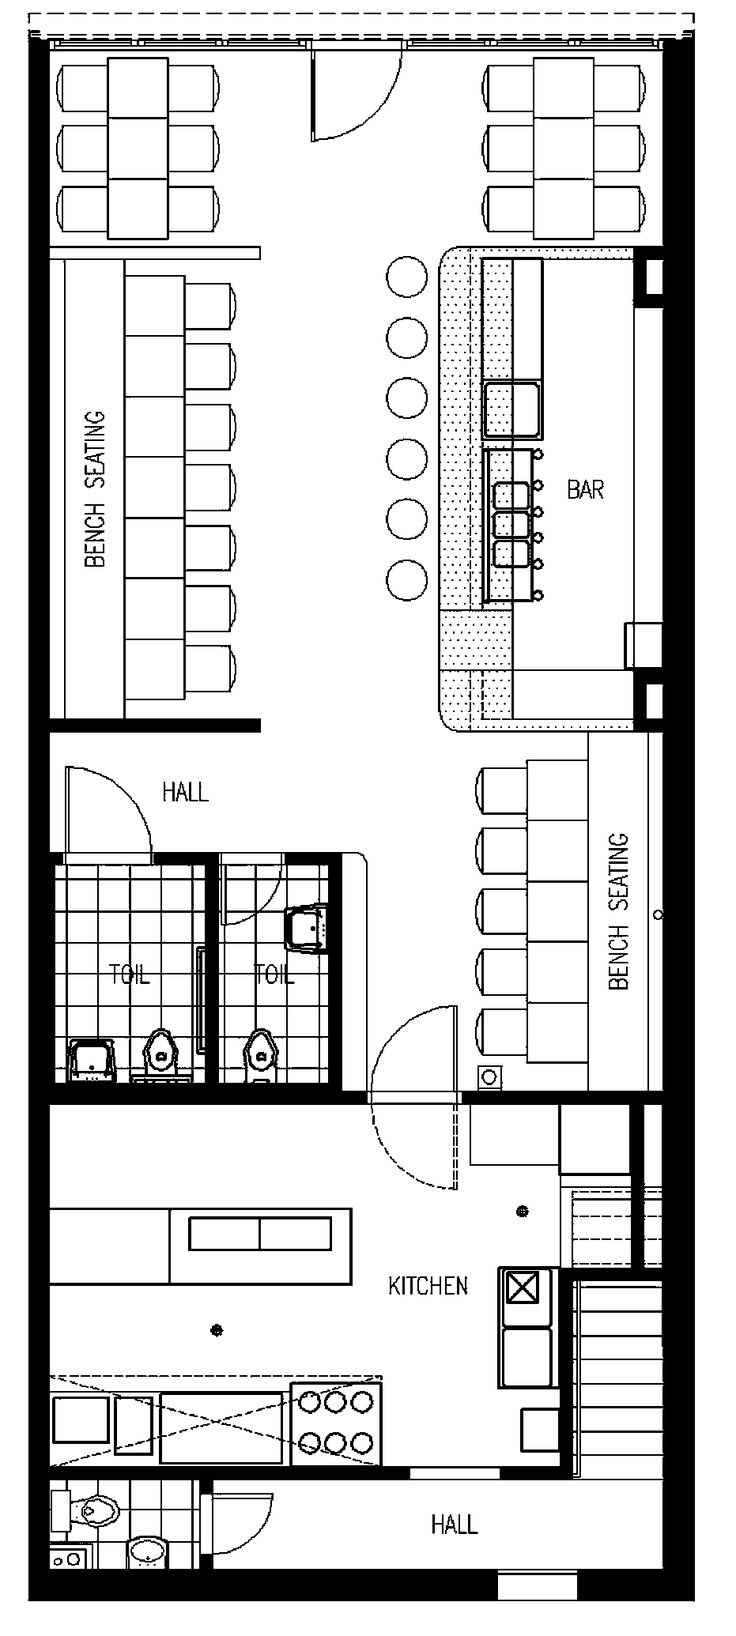 small restaurant square floor plans every restaurant needs cafe floor plan more